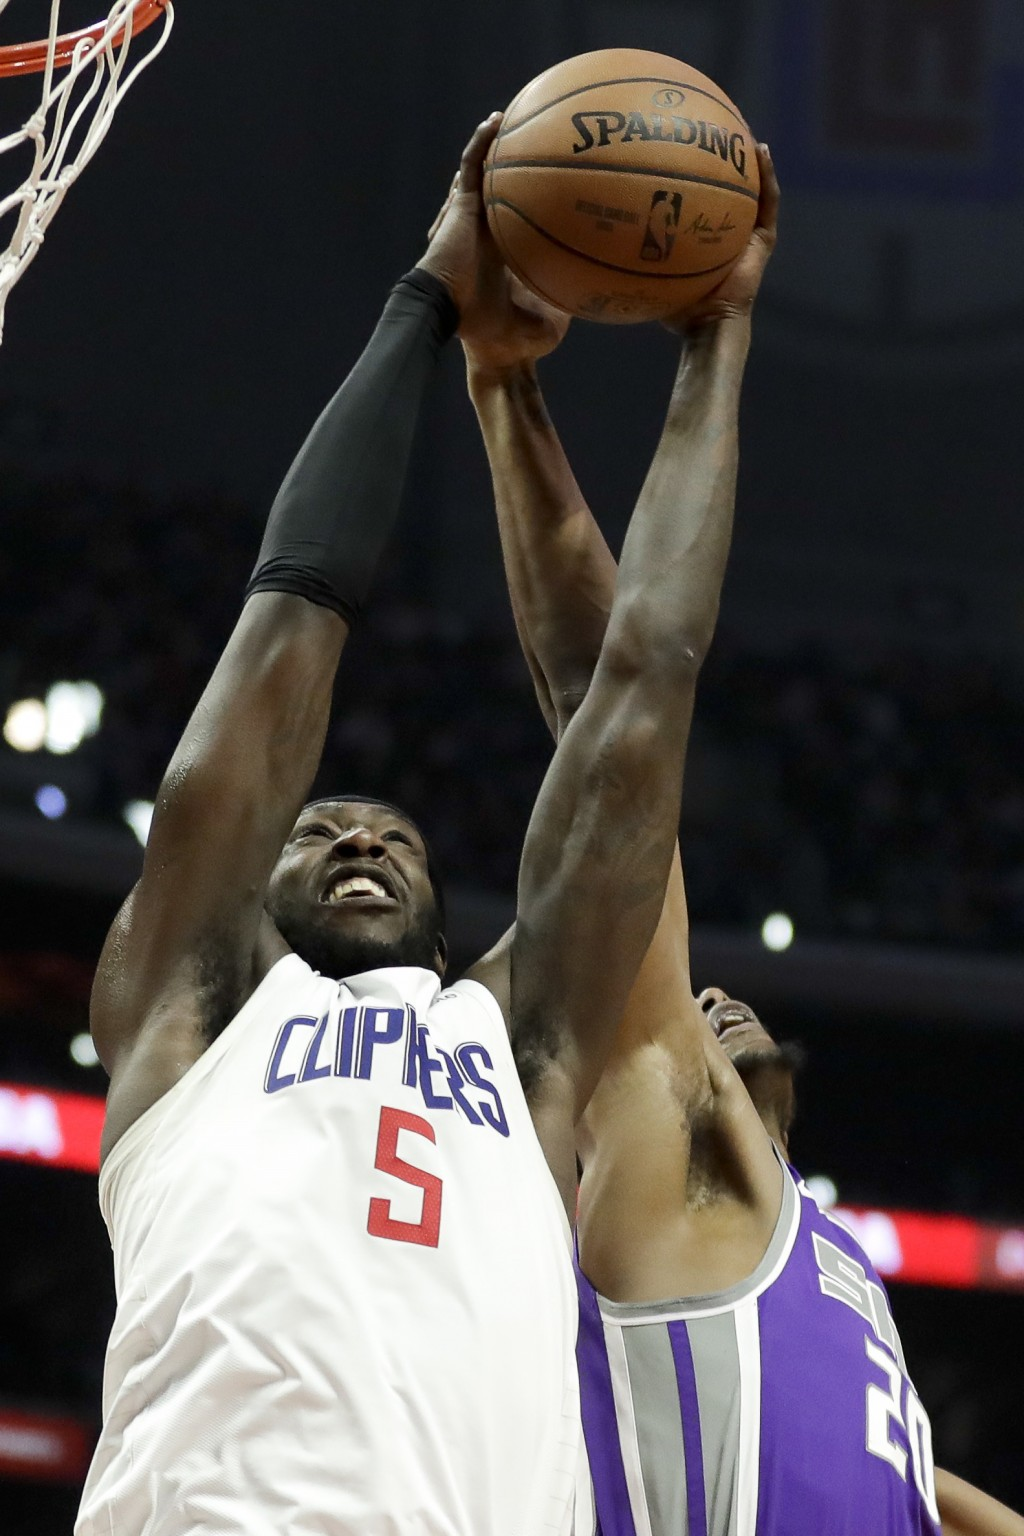 Los Angeles Clippers forward Montrezl Harrell (5) pulls a rebound away from Sacramento Kings forward Harry Giles during the second half of an NBA bask...